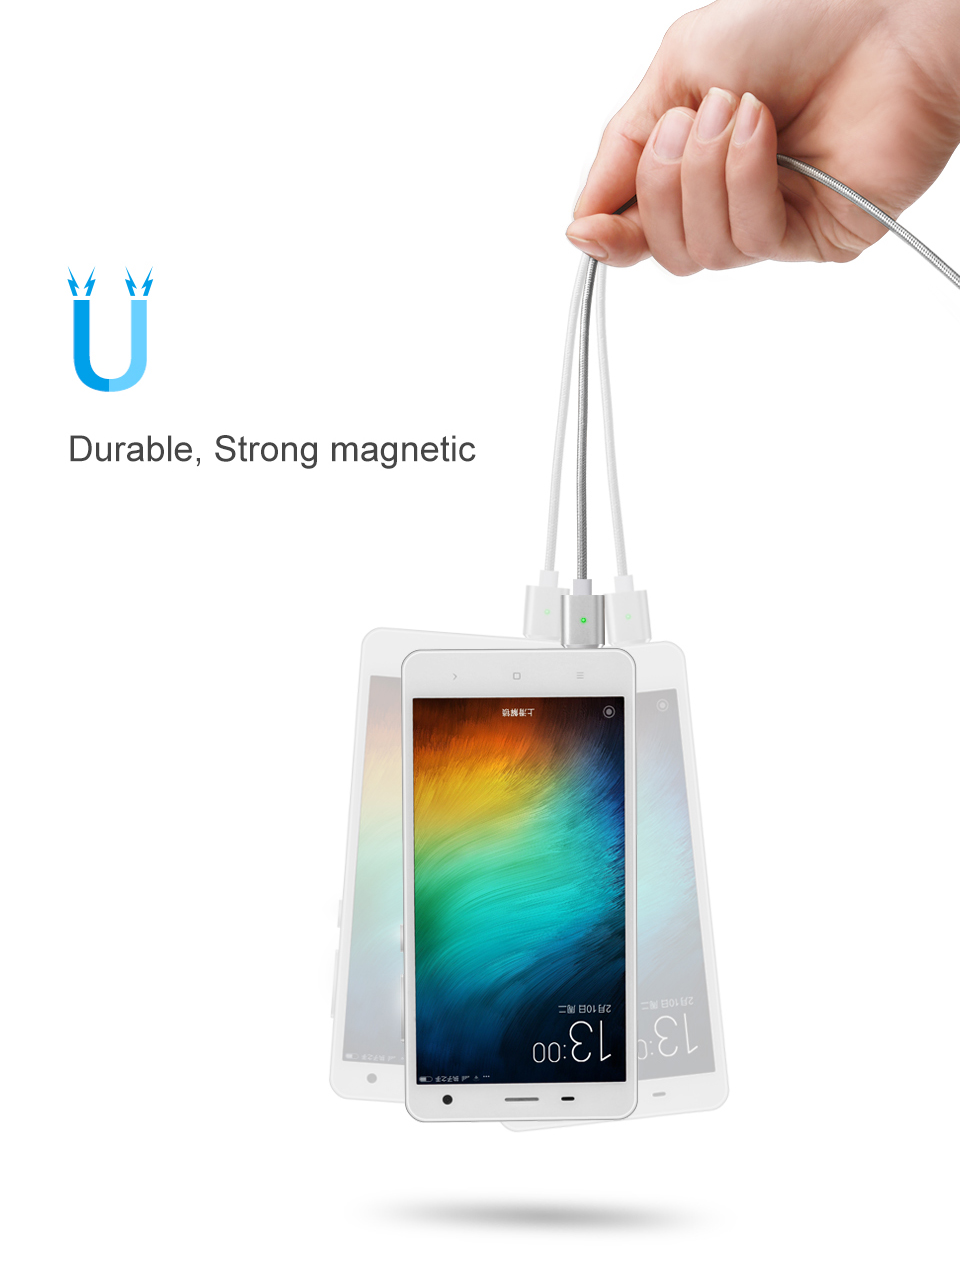 Elough E03 Magnetic Micro USB Cable Charger For Fast Charging And Magnetic Data Cable For Phones 8